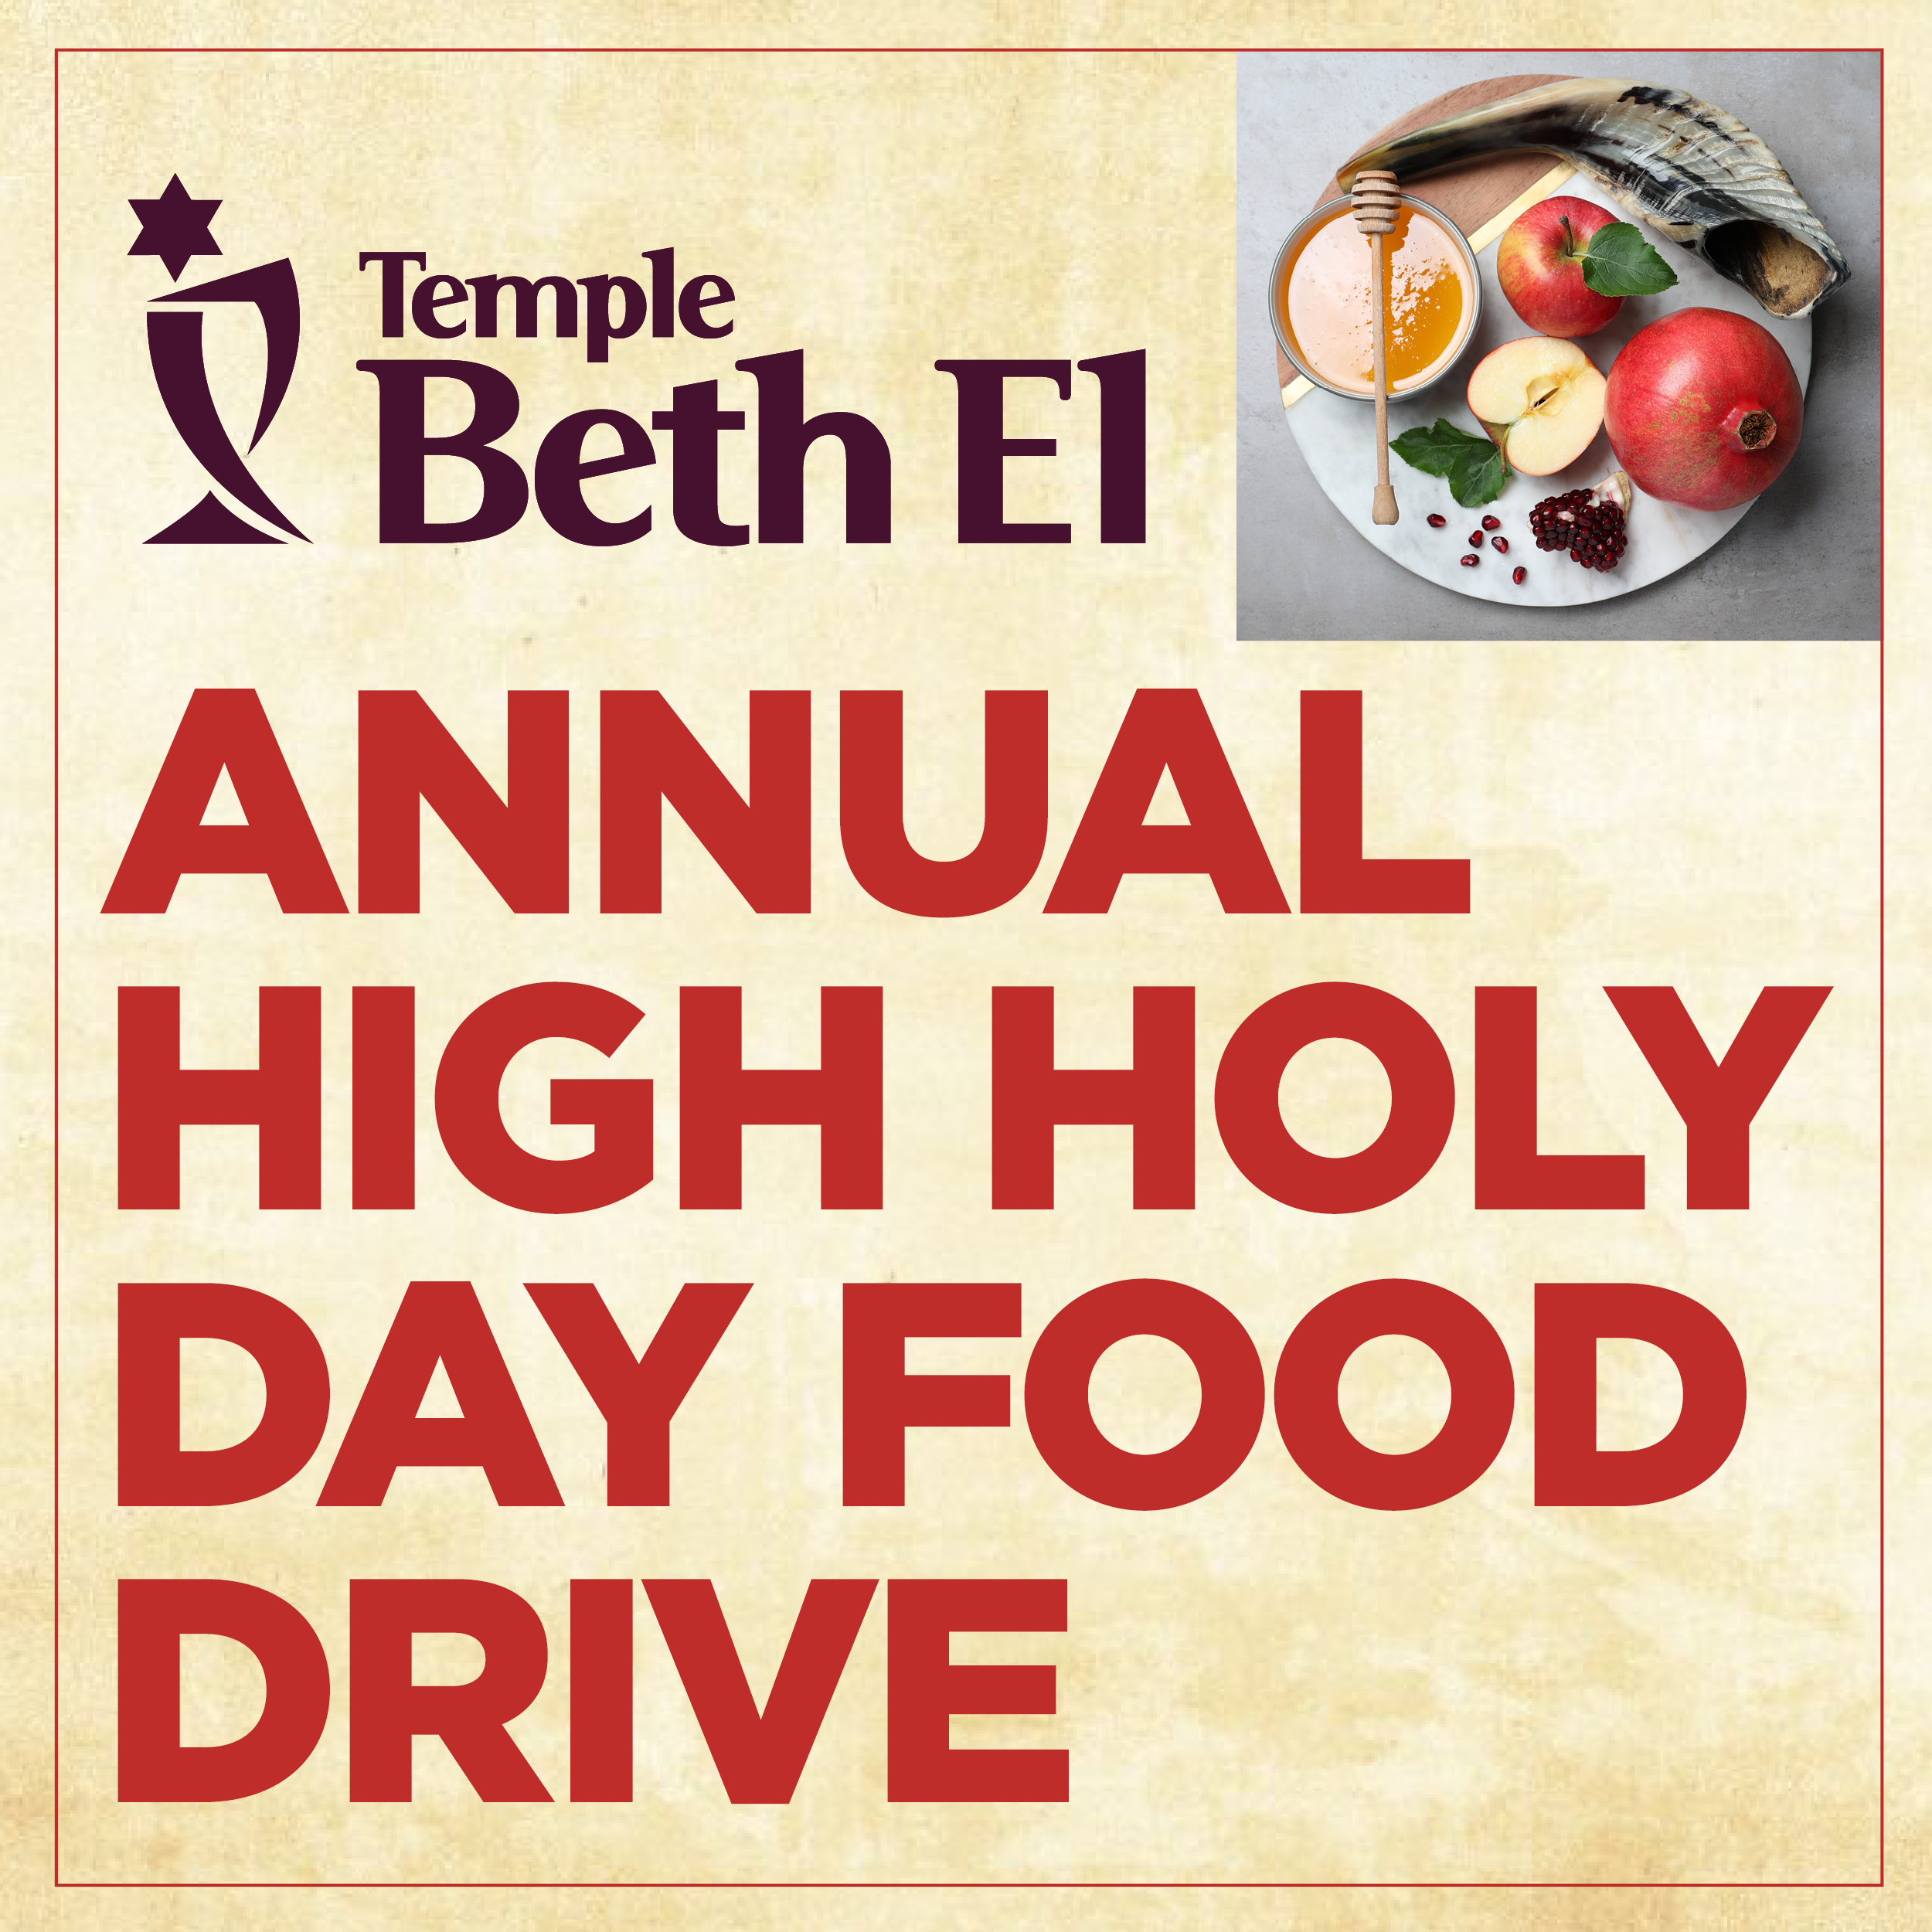 Temple Beth El Annual High Holy Day Food Drive event graphic 2021